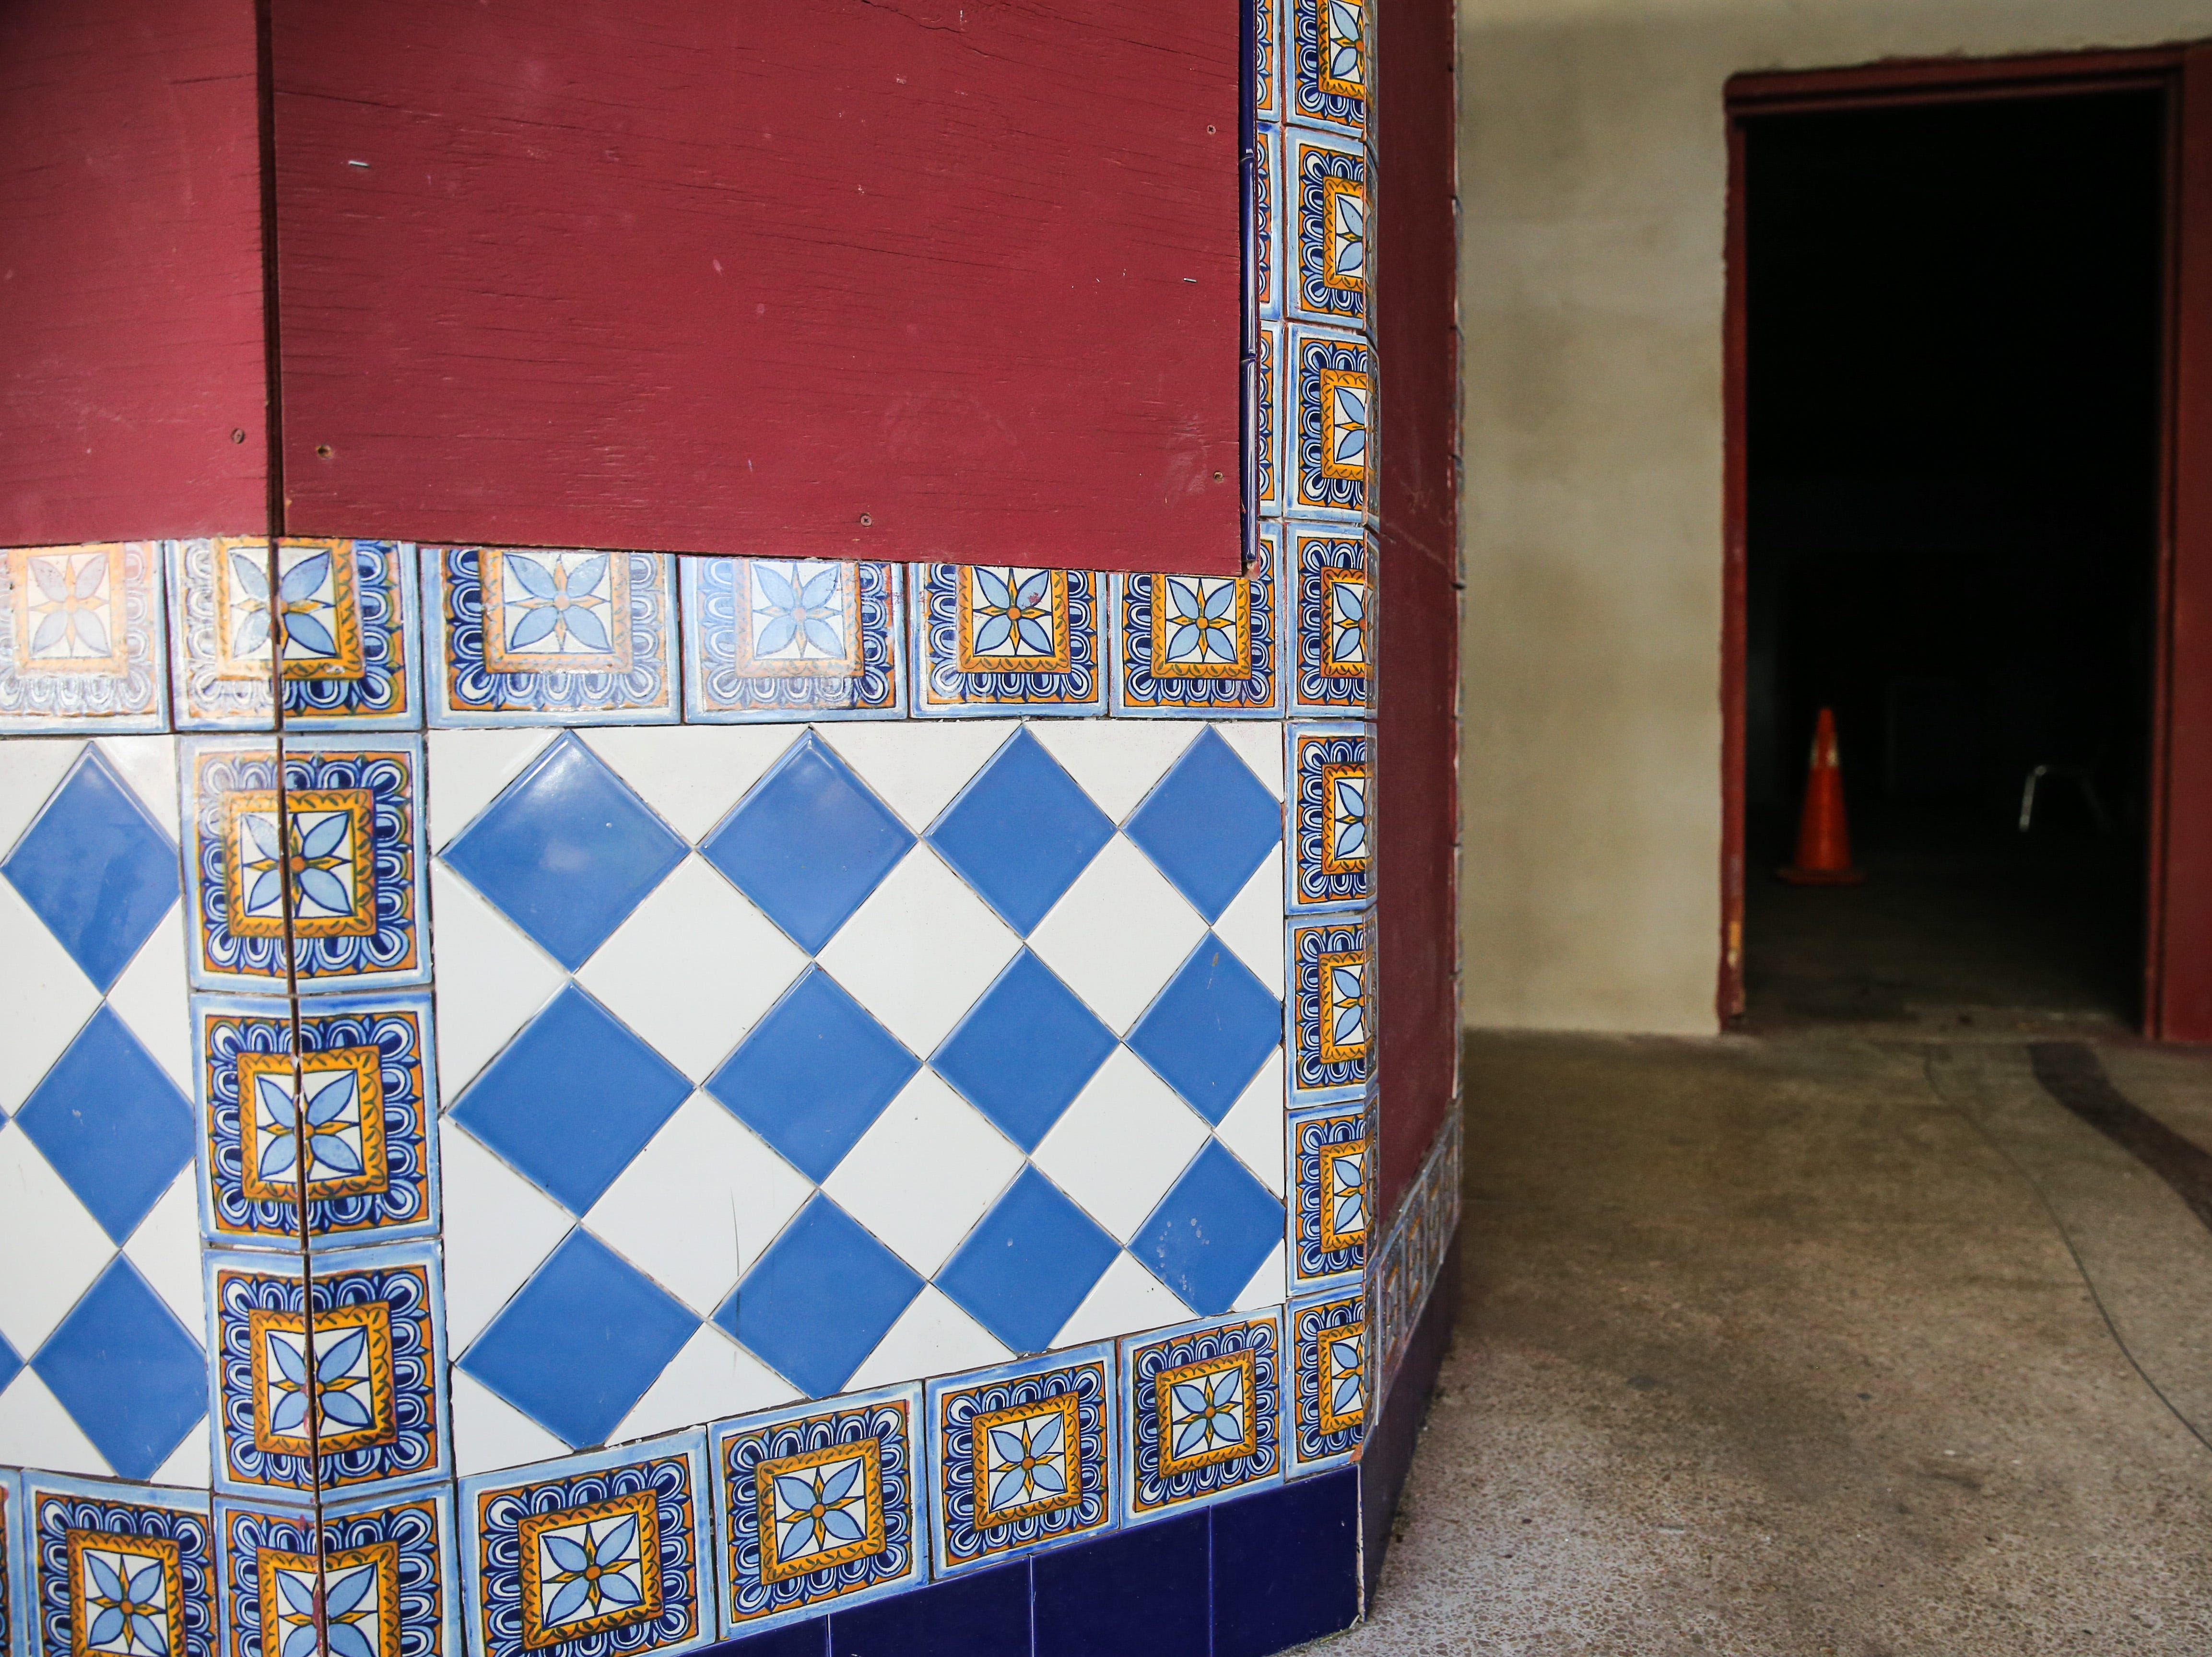 Tile adorns the box office at the entrance of the former Texas Theatre. The building was built in 1929.